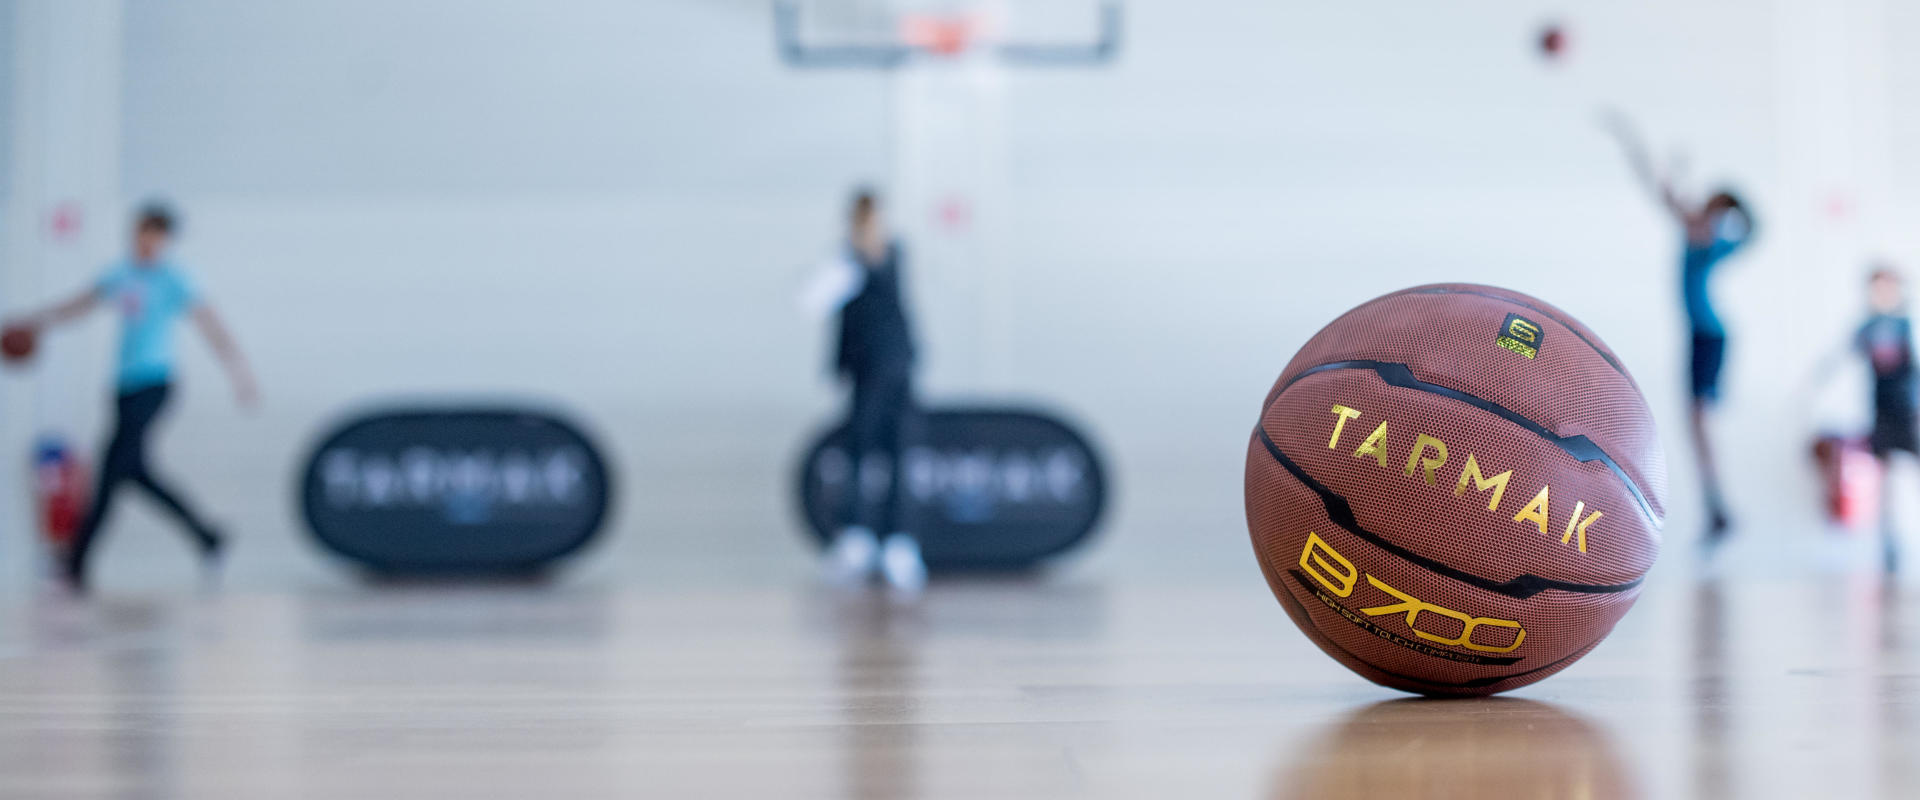 Learn To Play Basketball - The Essentials